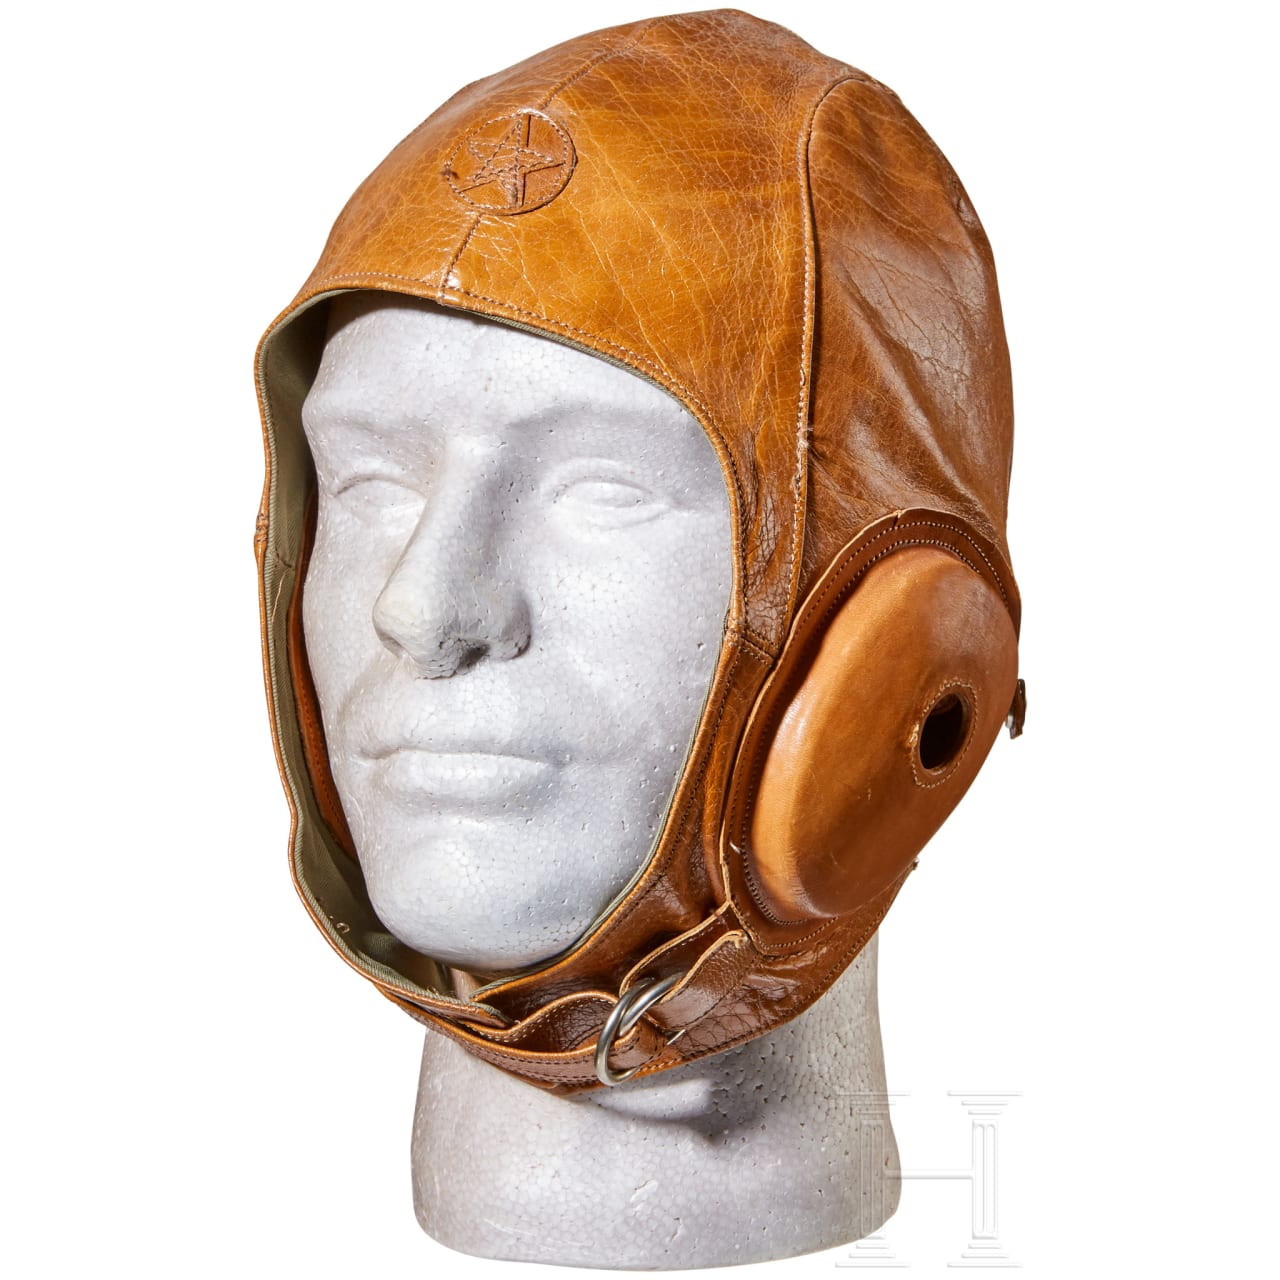 A Japanese Army Pilot Flight Helmet